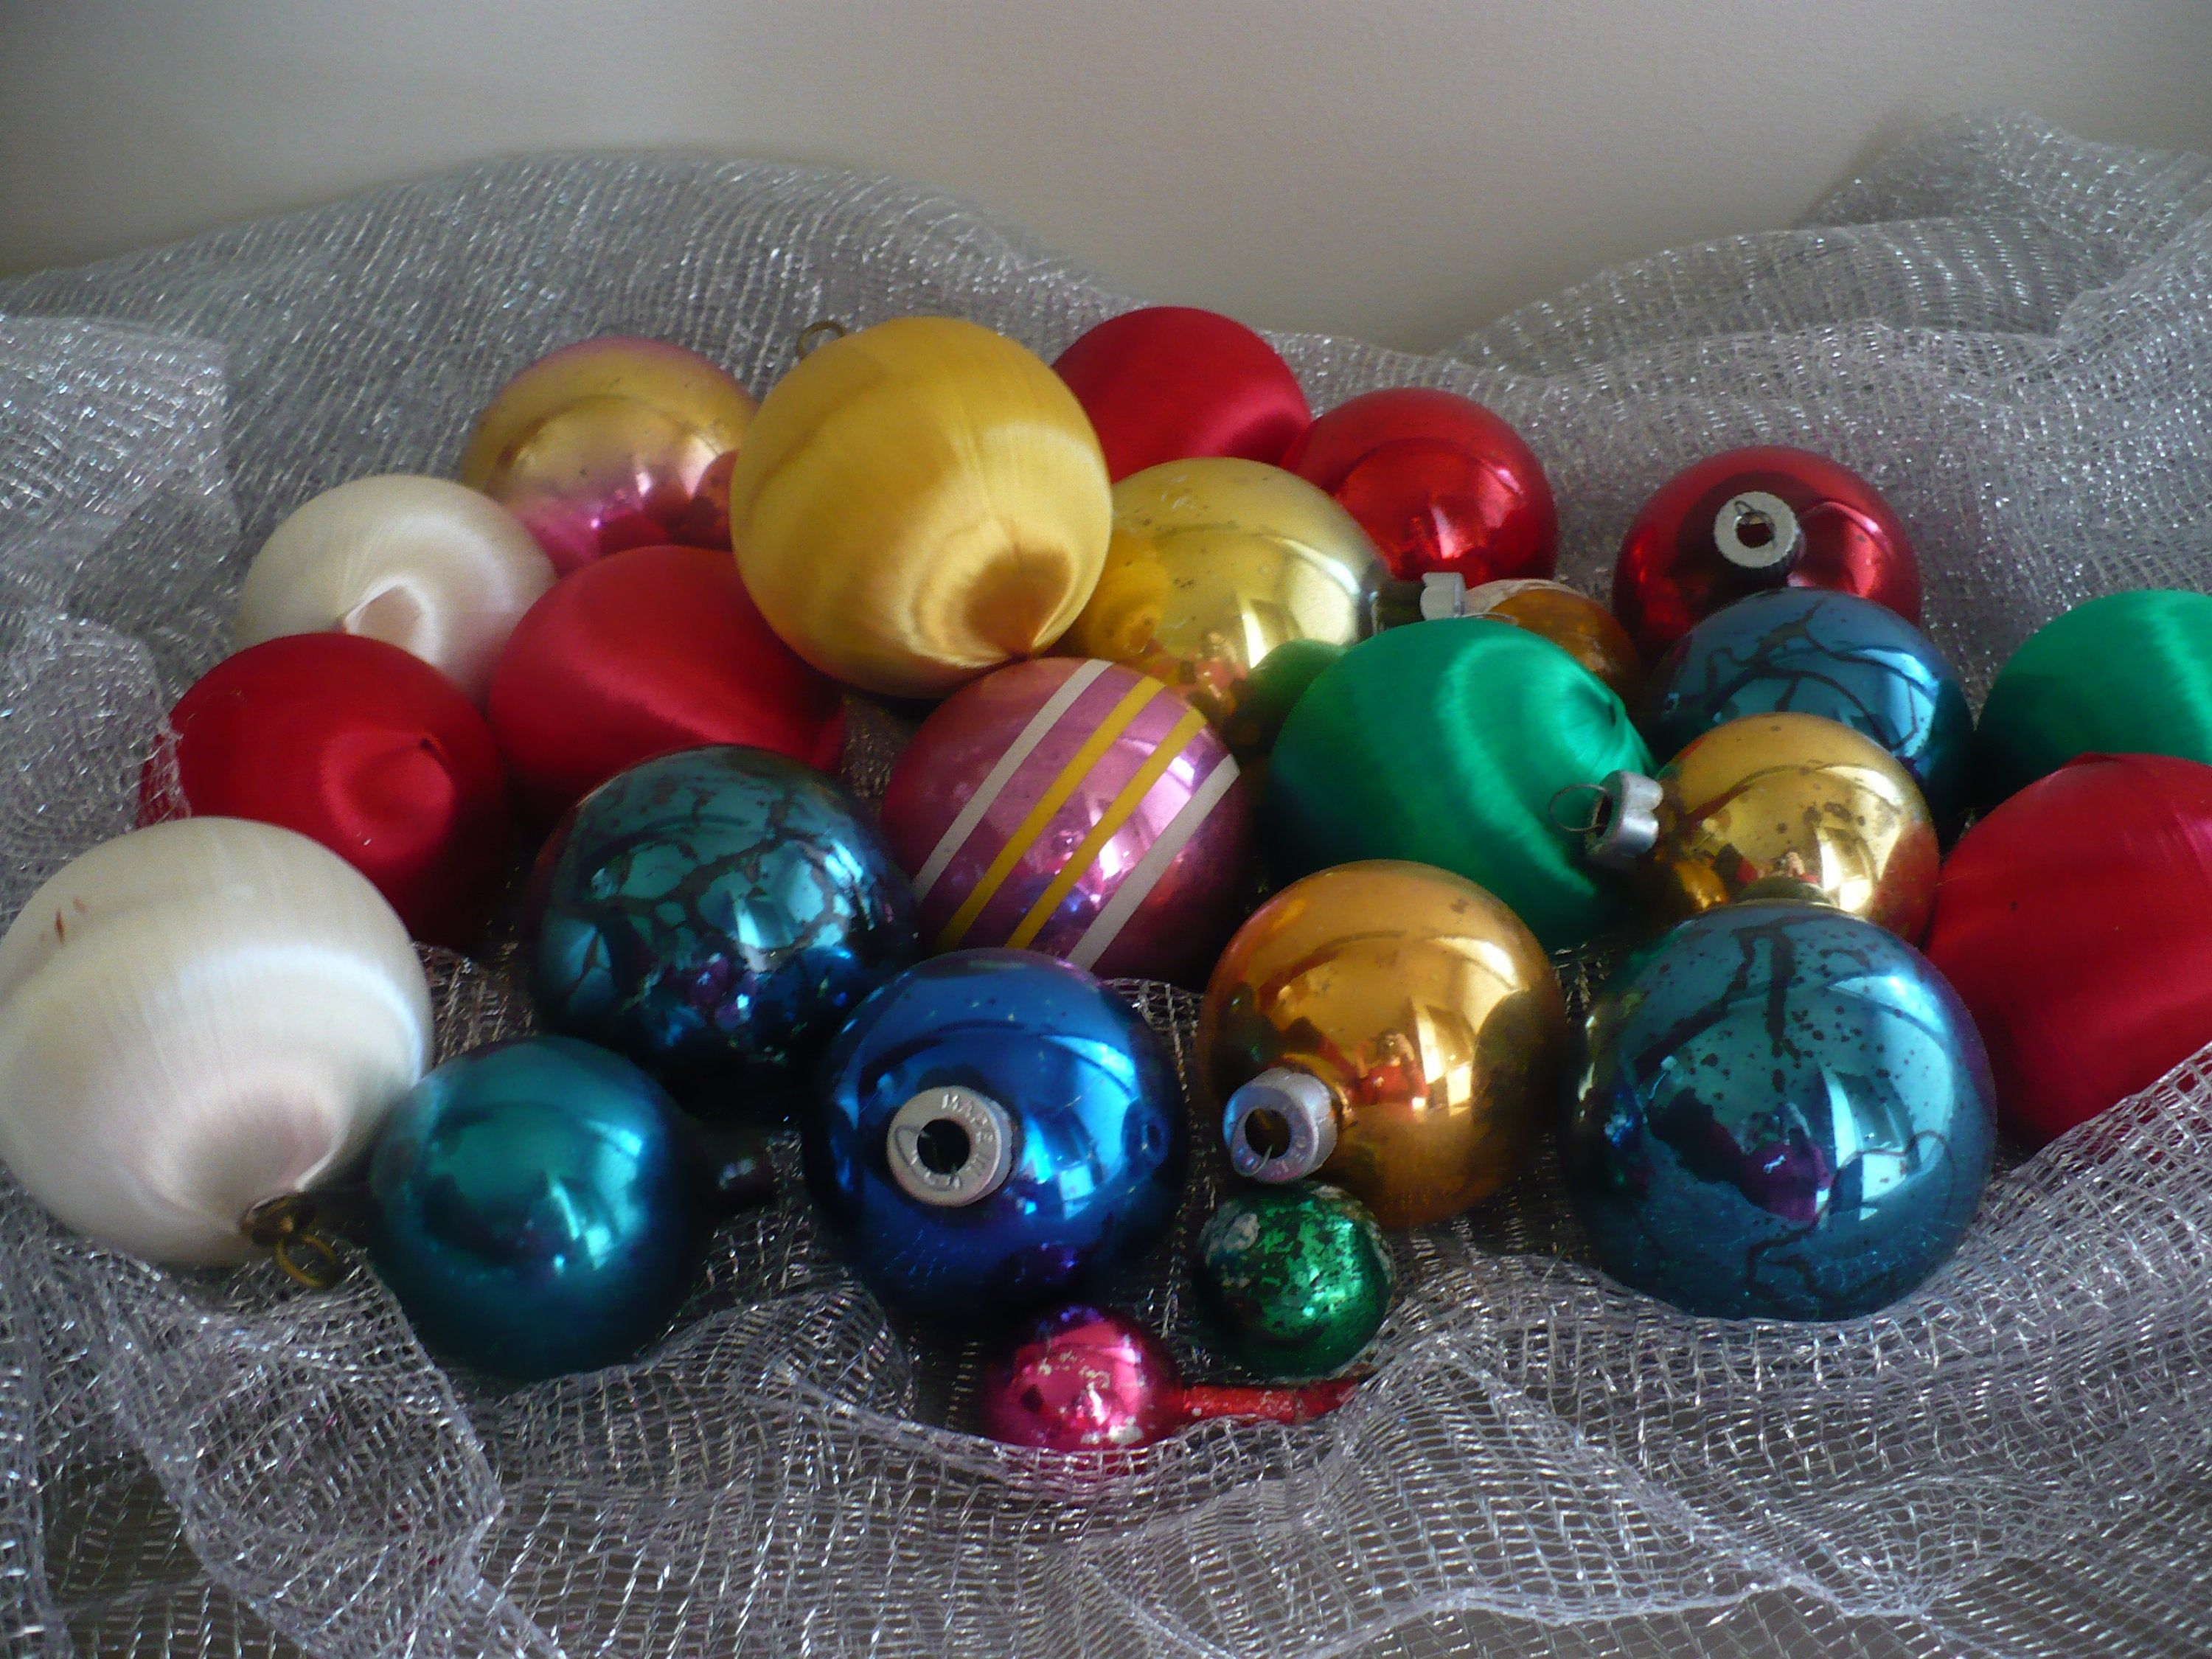 Satin And Glass Ornament Lot Vintage Round Ornaments Vintage Christmas Theearlybirdfinds In 2020 Glass Ornaments Round Ornaments Vintage Ornaments